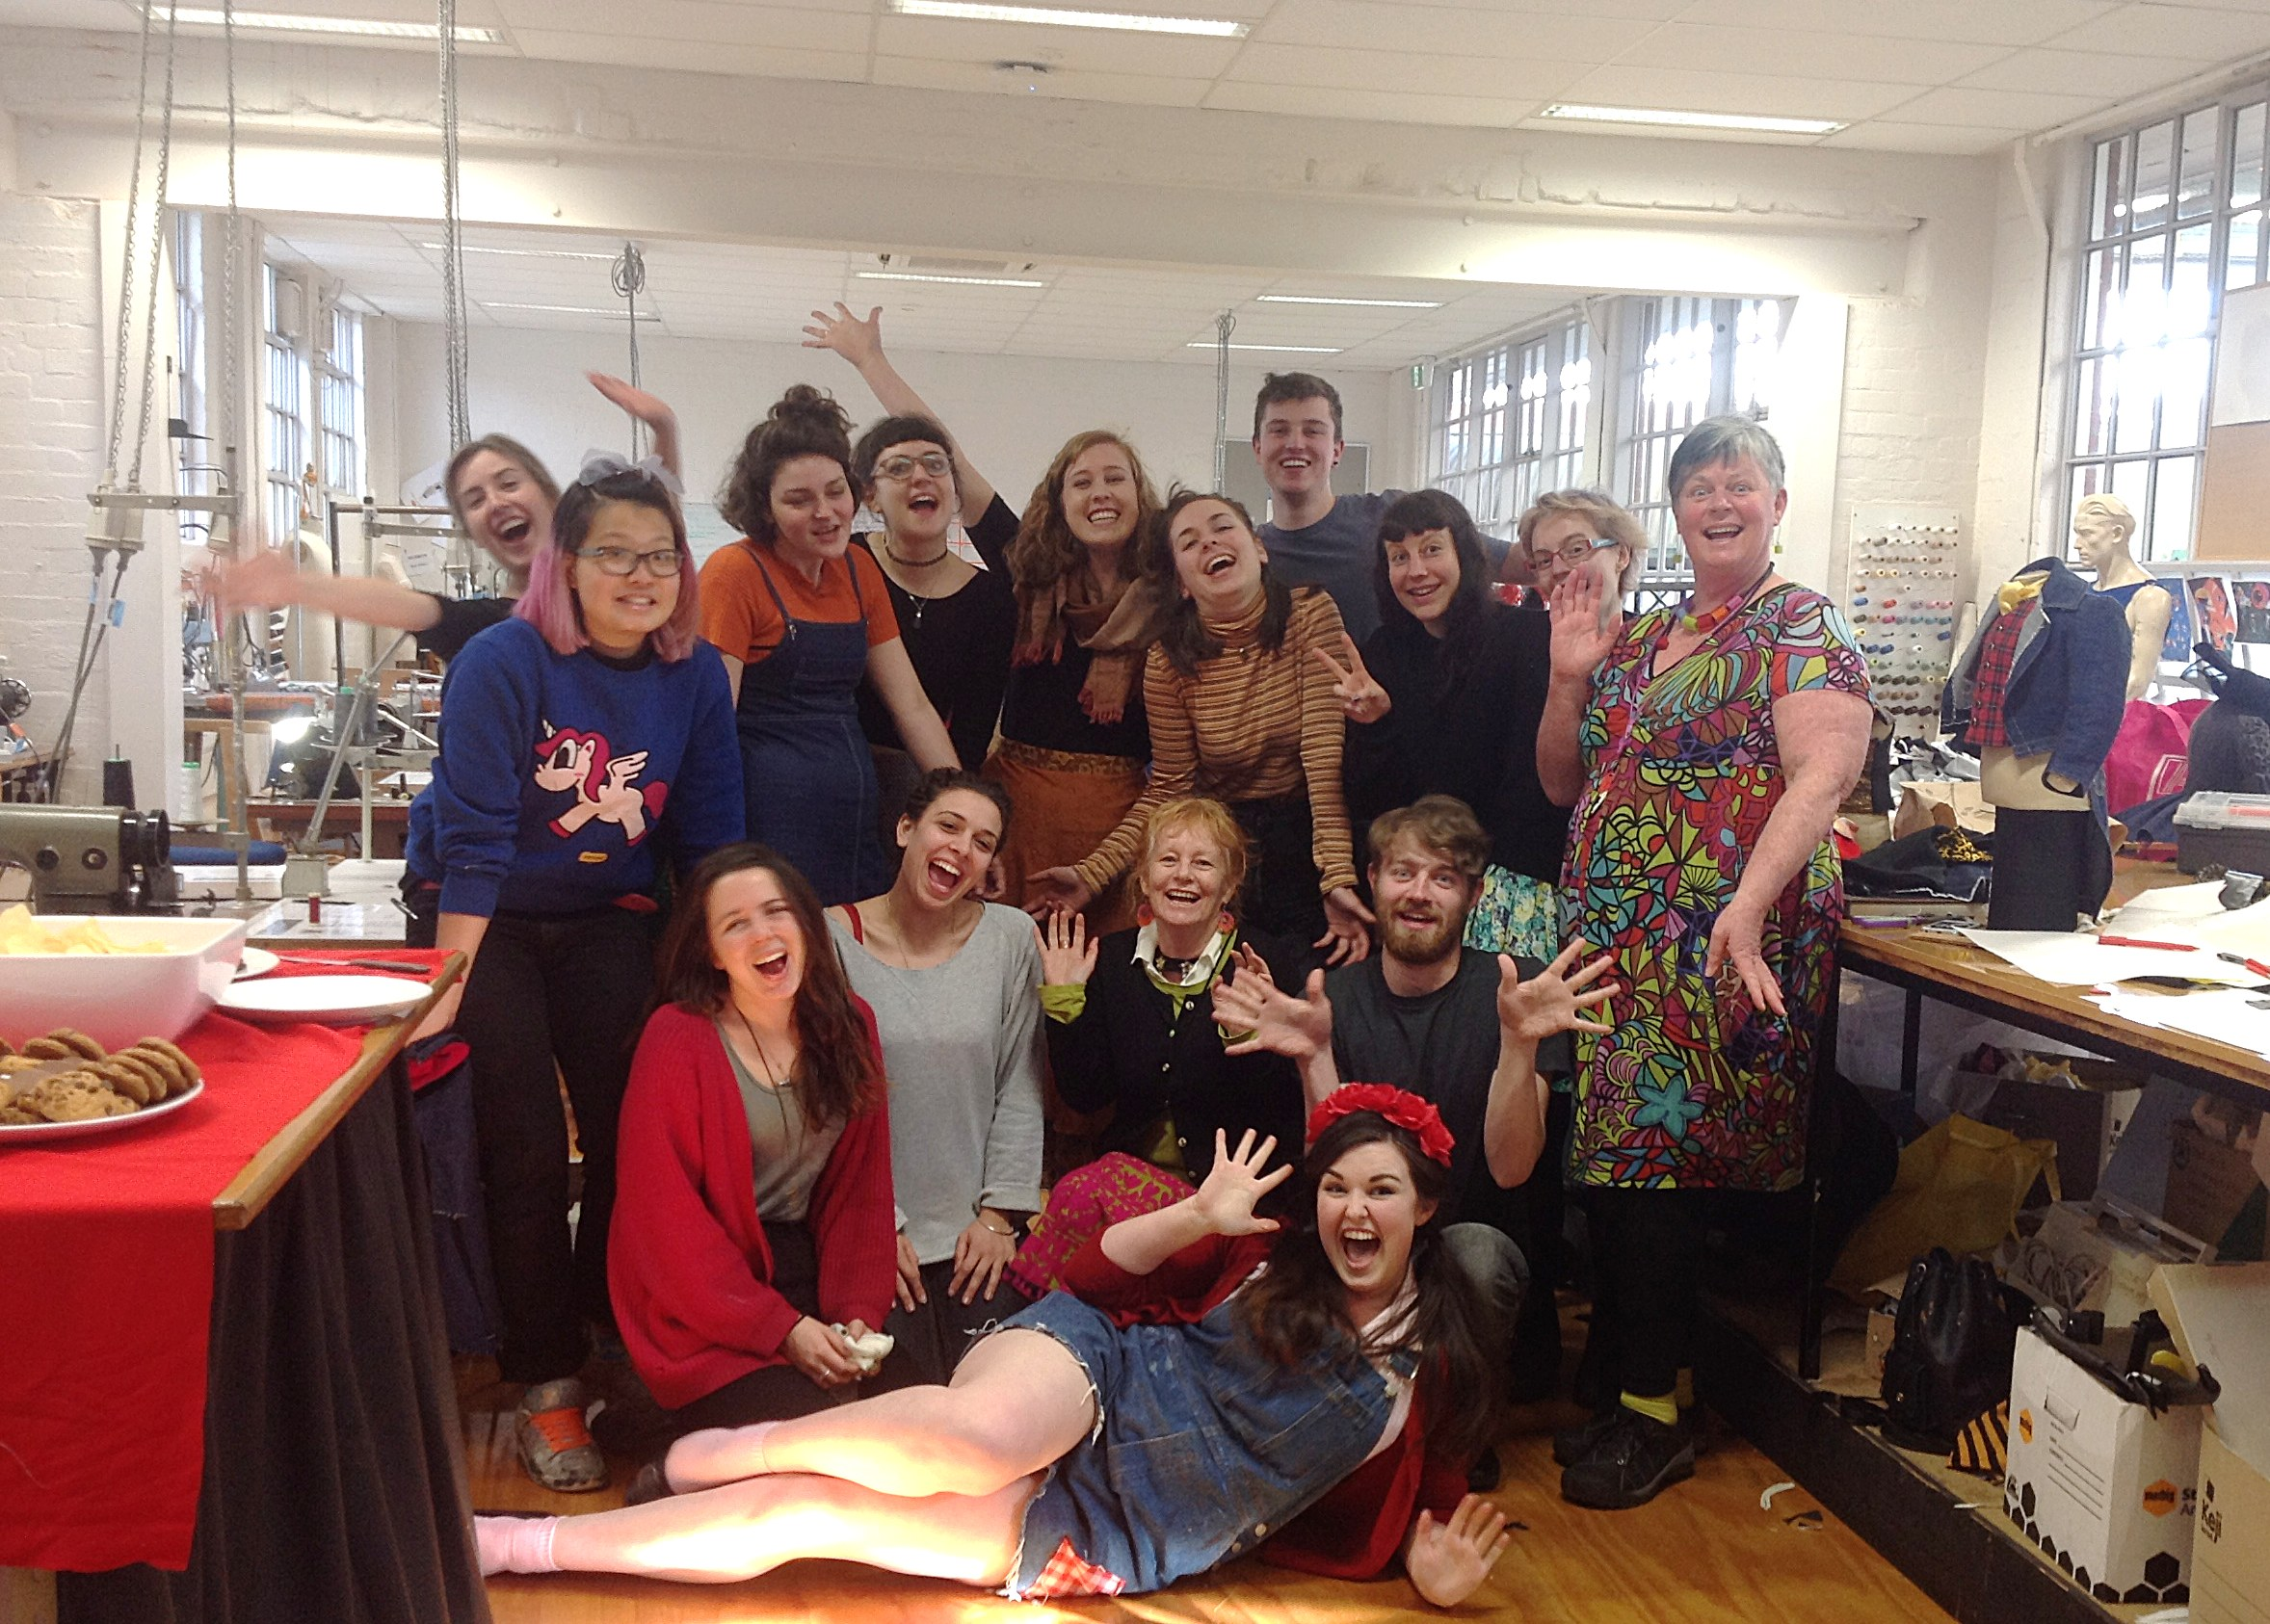 A group photo with the wonderful Kym on the right who is the big boss of all production at the VCA